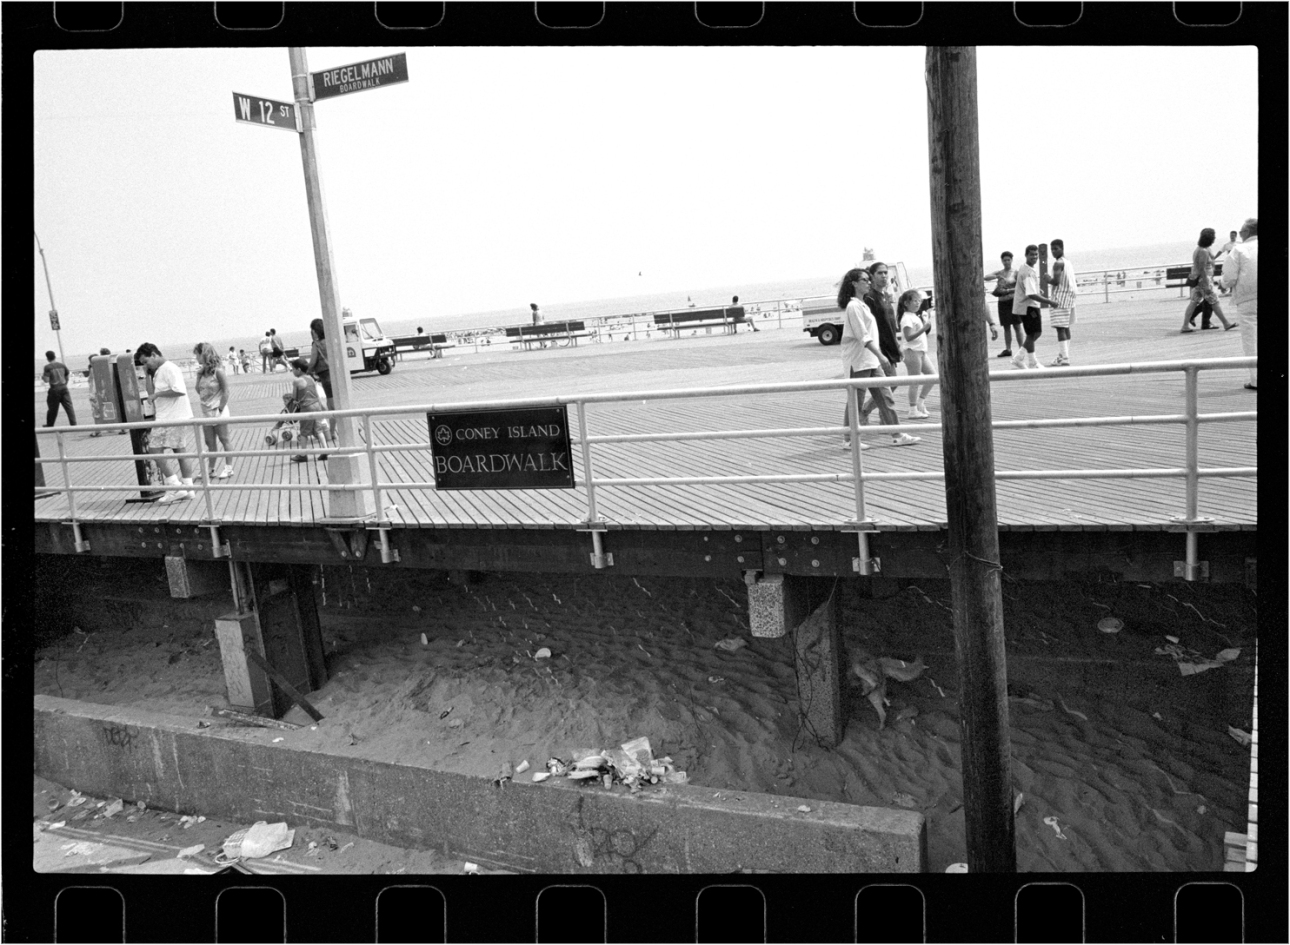 Coney-Boardwalk-over-Under-1986 copy